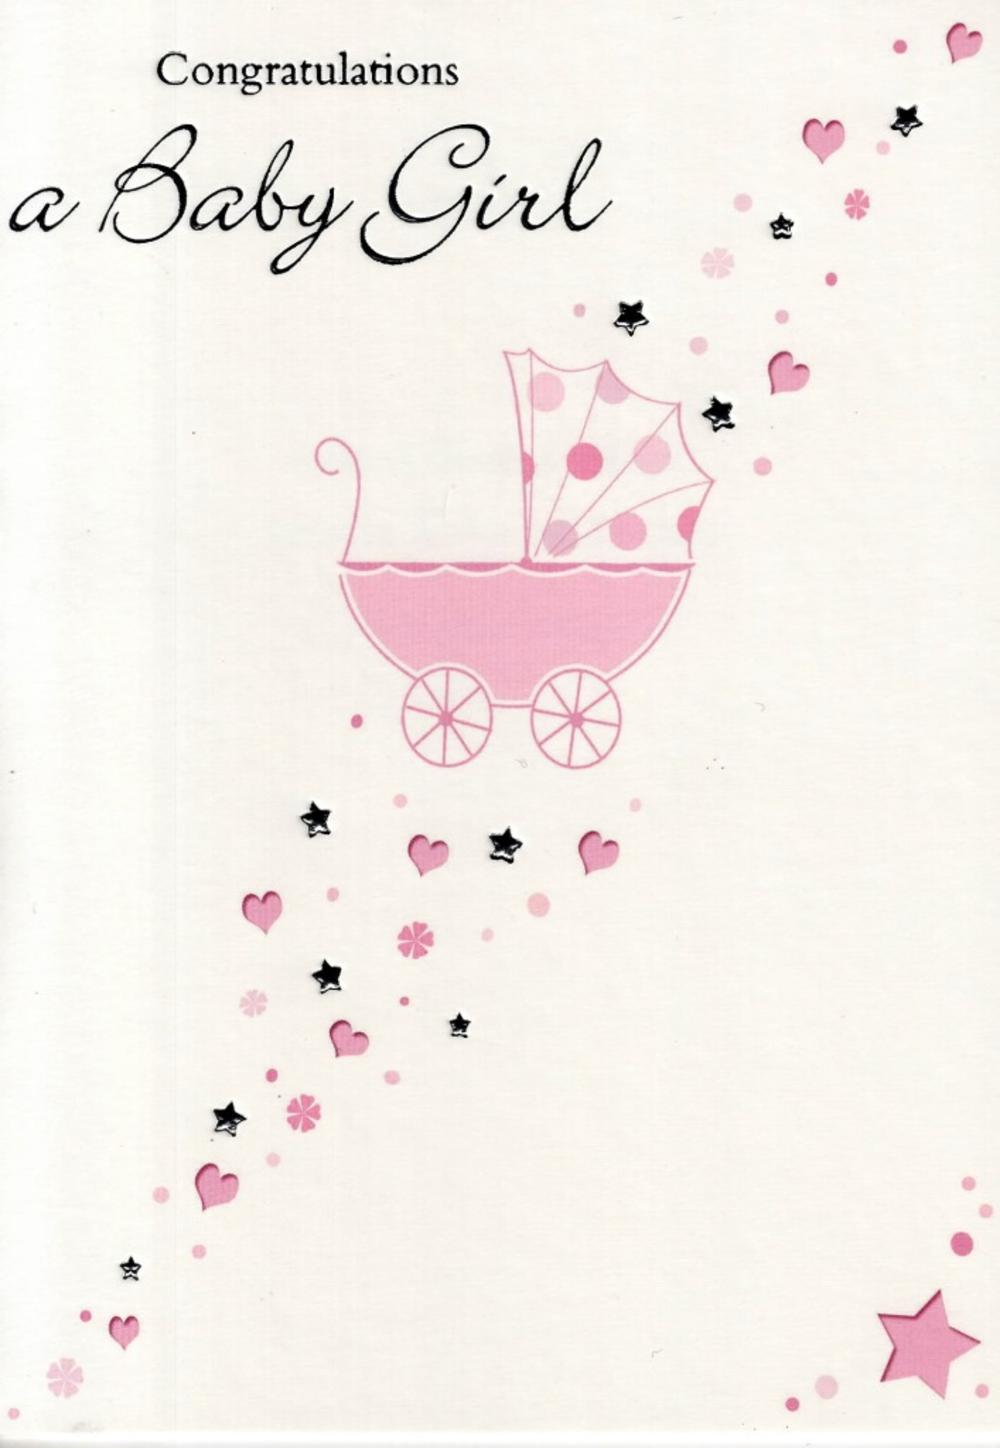 Congratulations a new baby girl greeting card cards love kates congratulations a new baby girl greeting card kristyandbryce Images